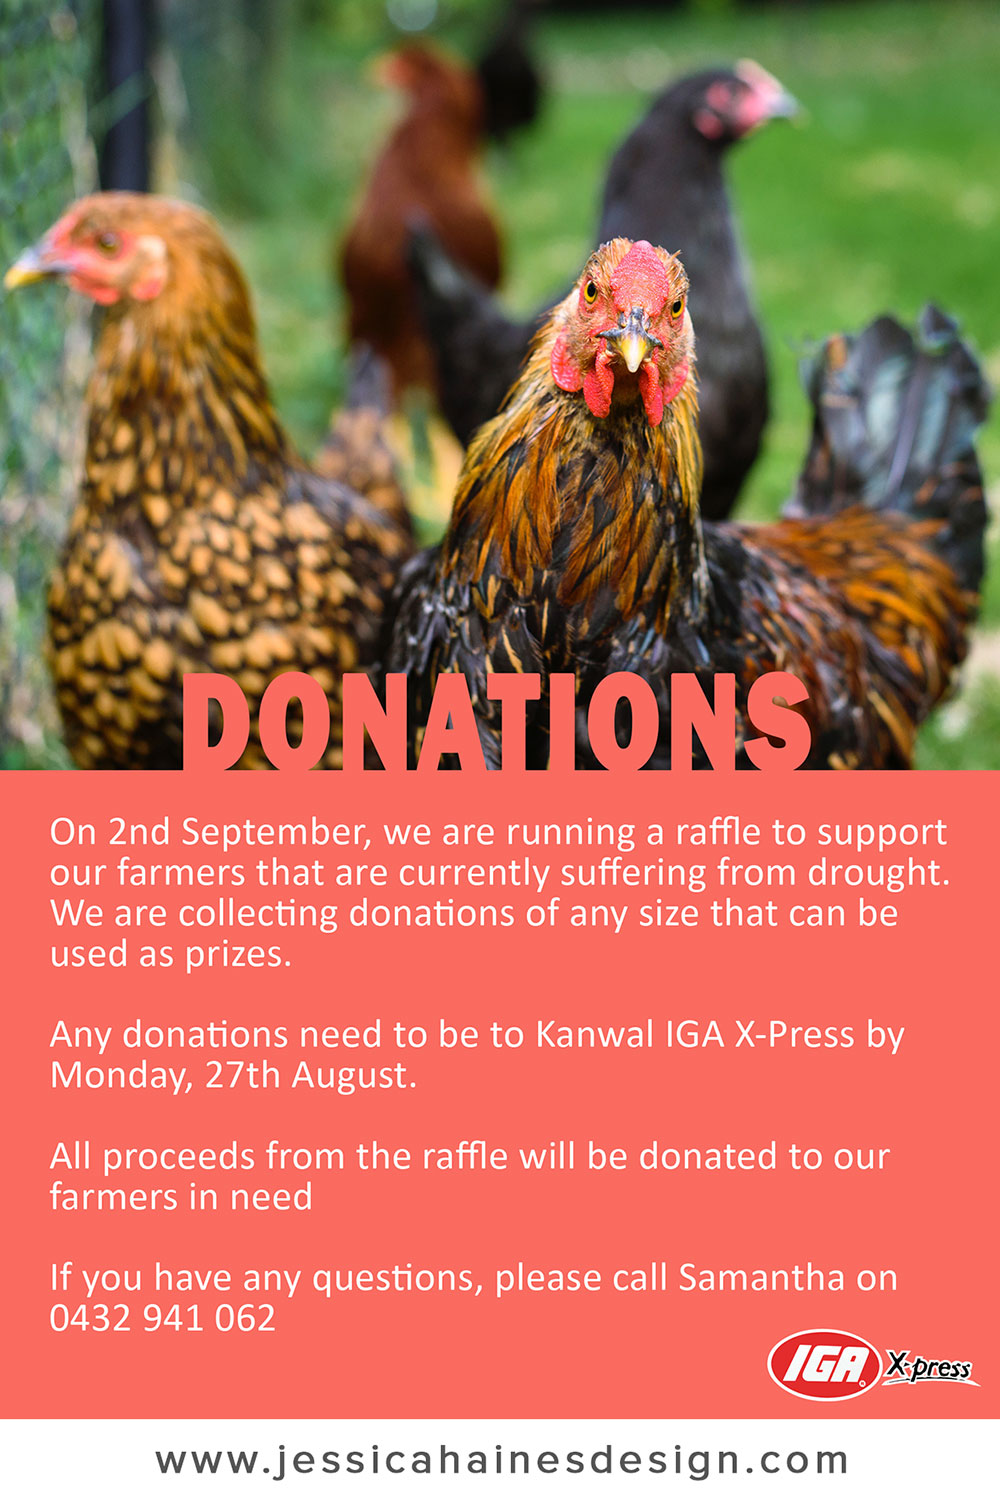 IGA XPress Drought Relief Fundraiser Donations Poster